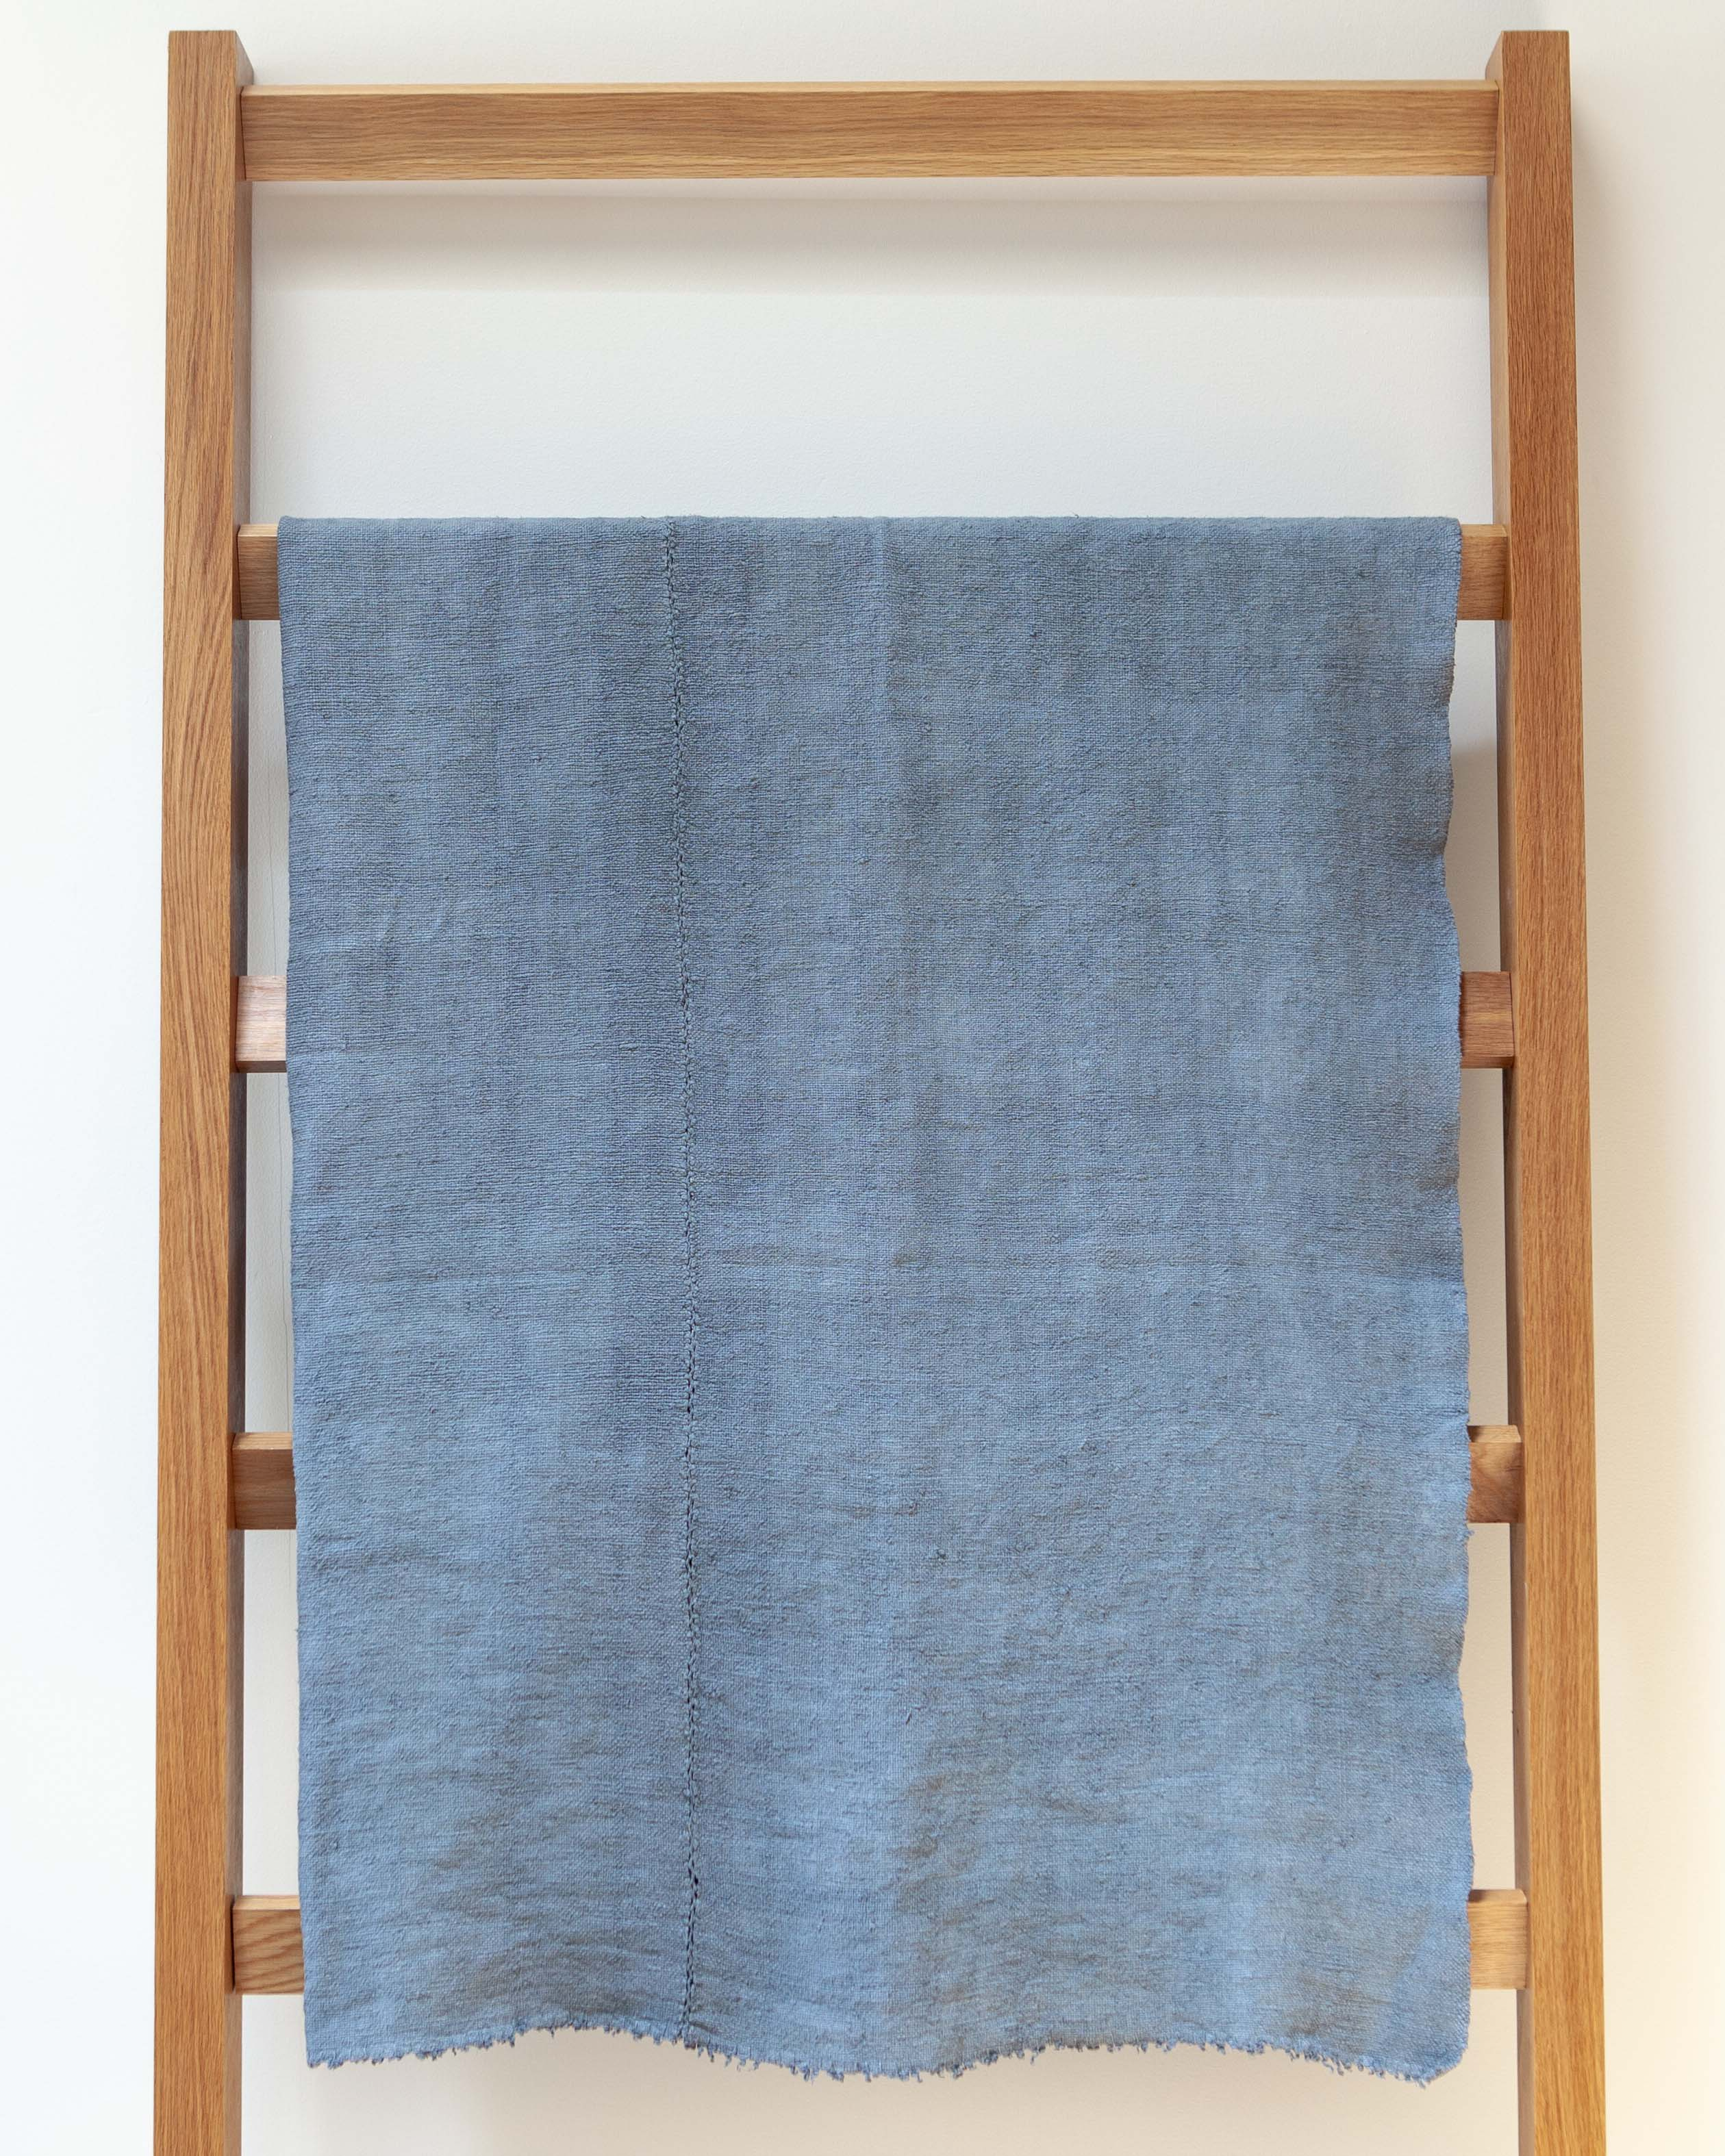 Hand-Painted Vintage Linen Throw - Blues